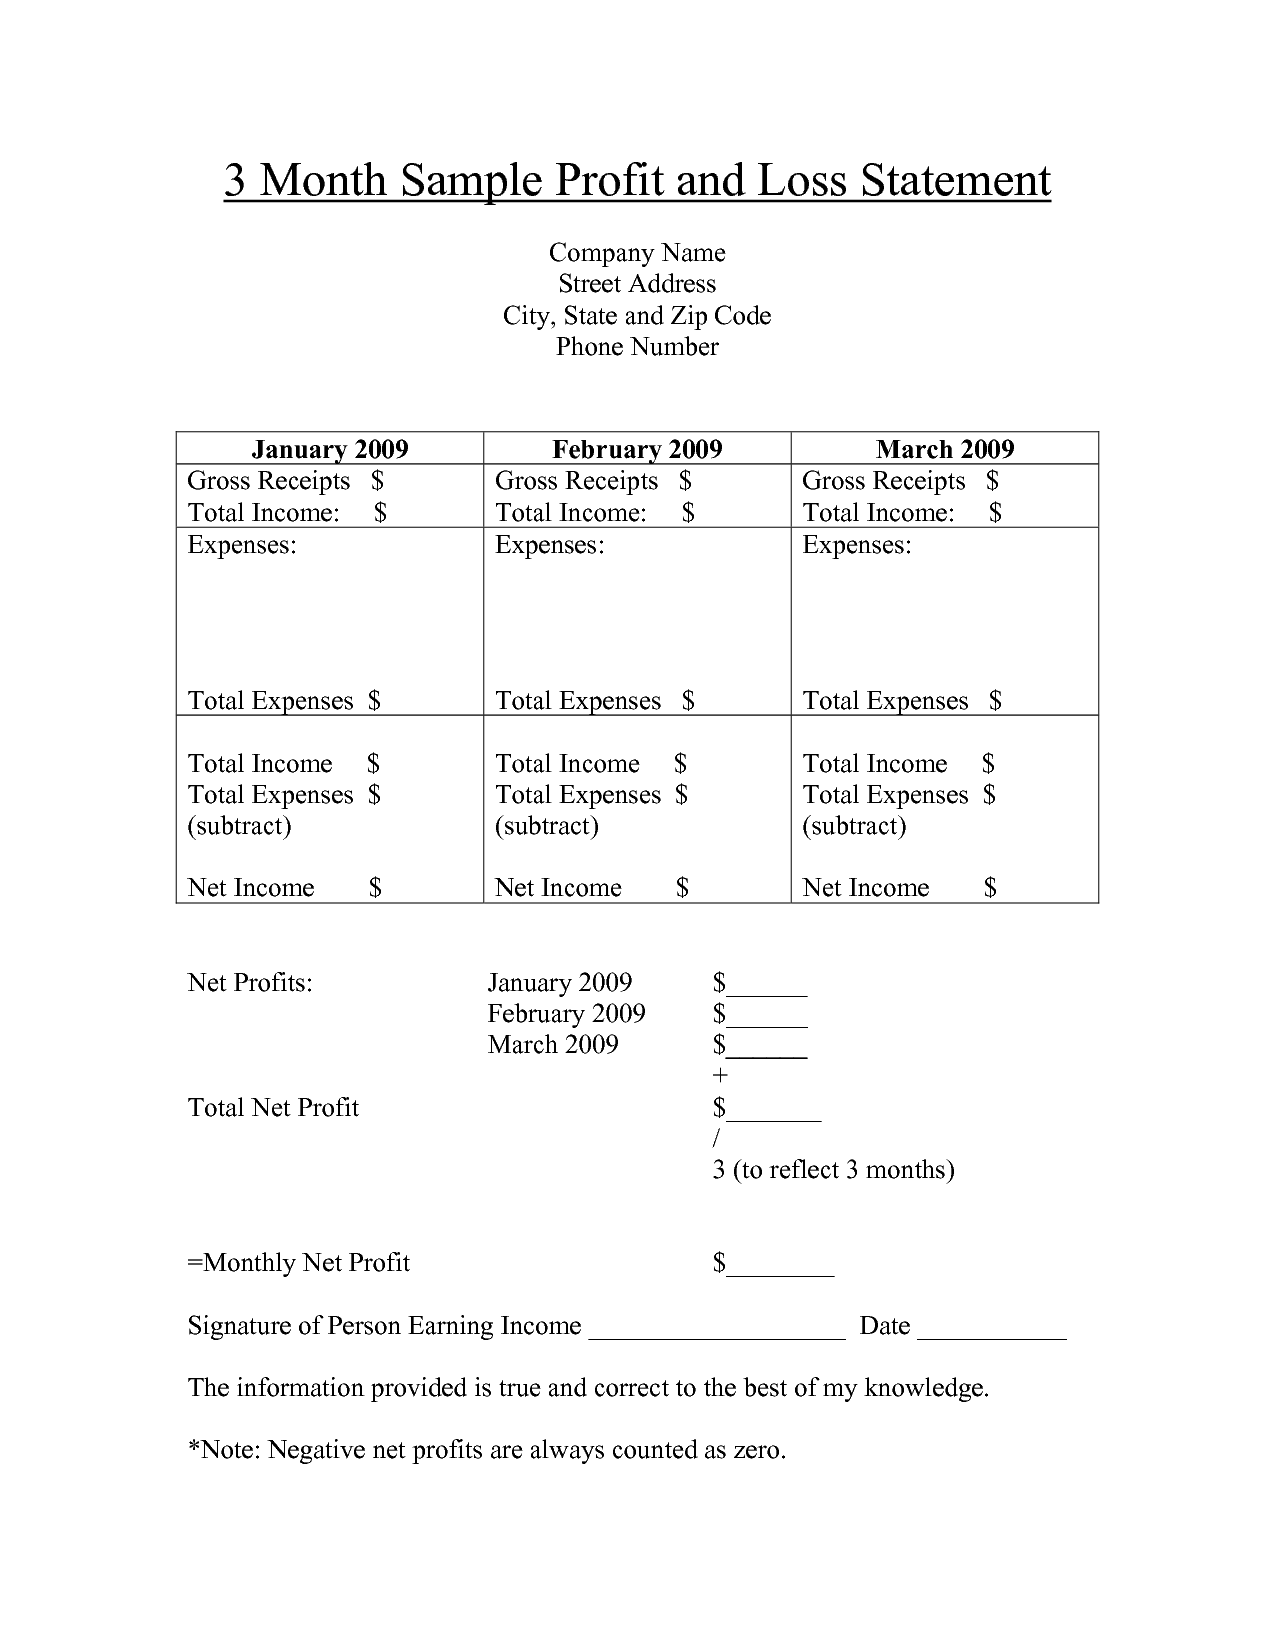 Free Printable Profit And Loss Statement Form For Home Care   Bing Images  Free Profit And Loss Statement